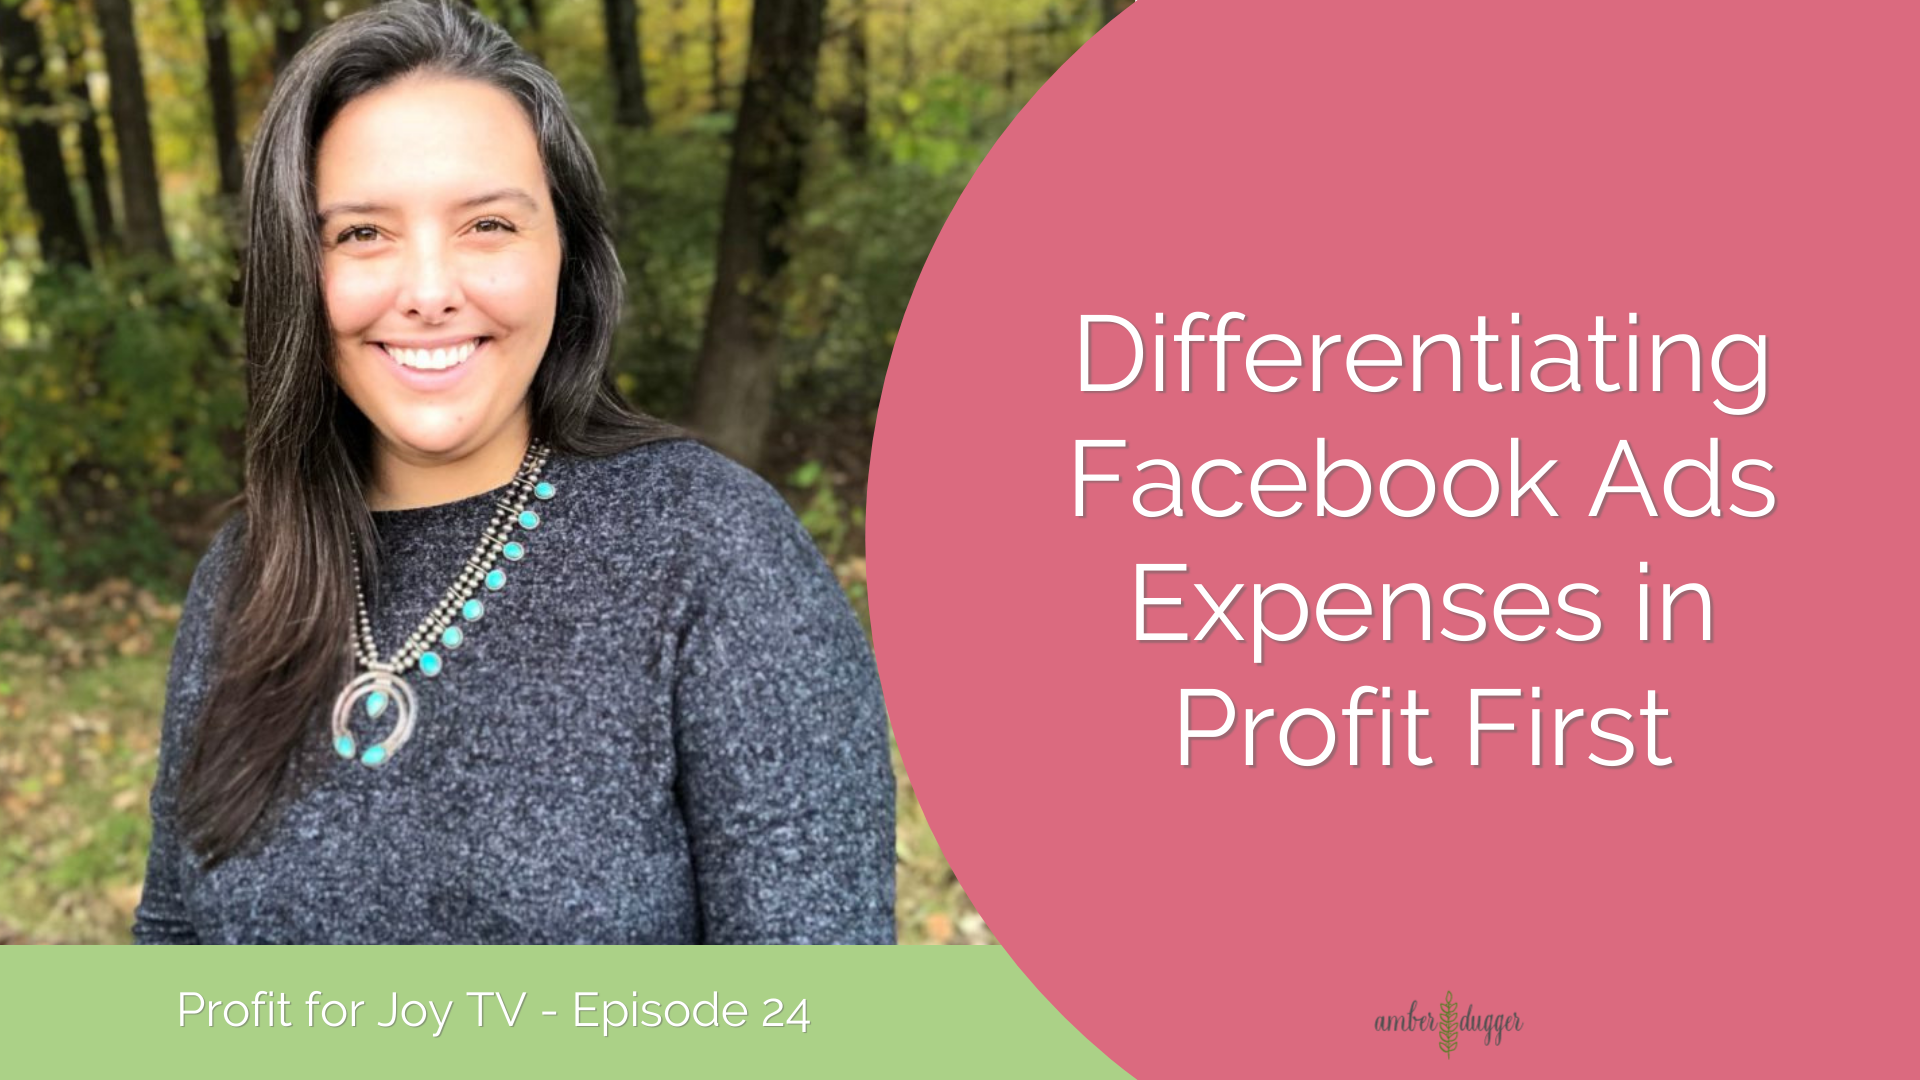 Differentiating Facebook Ads Expenses in Profit First